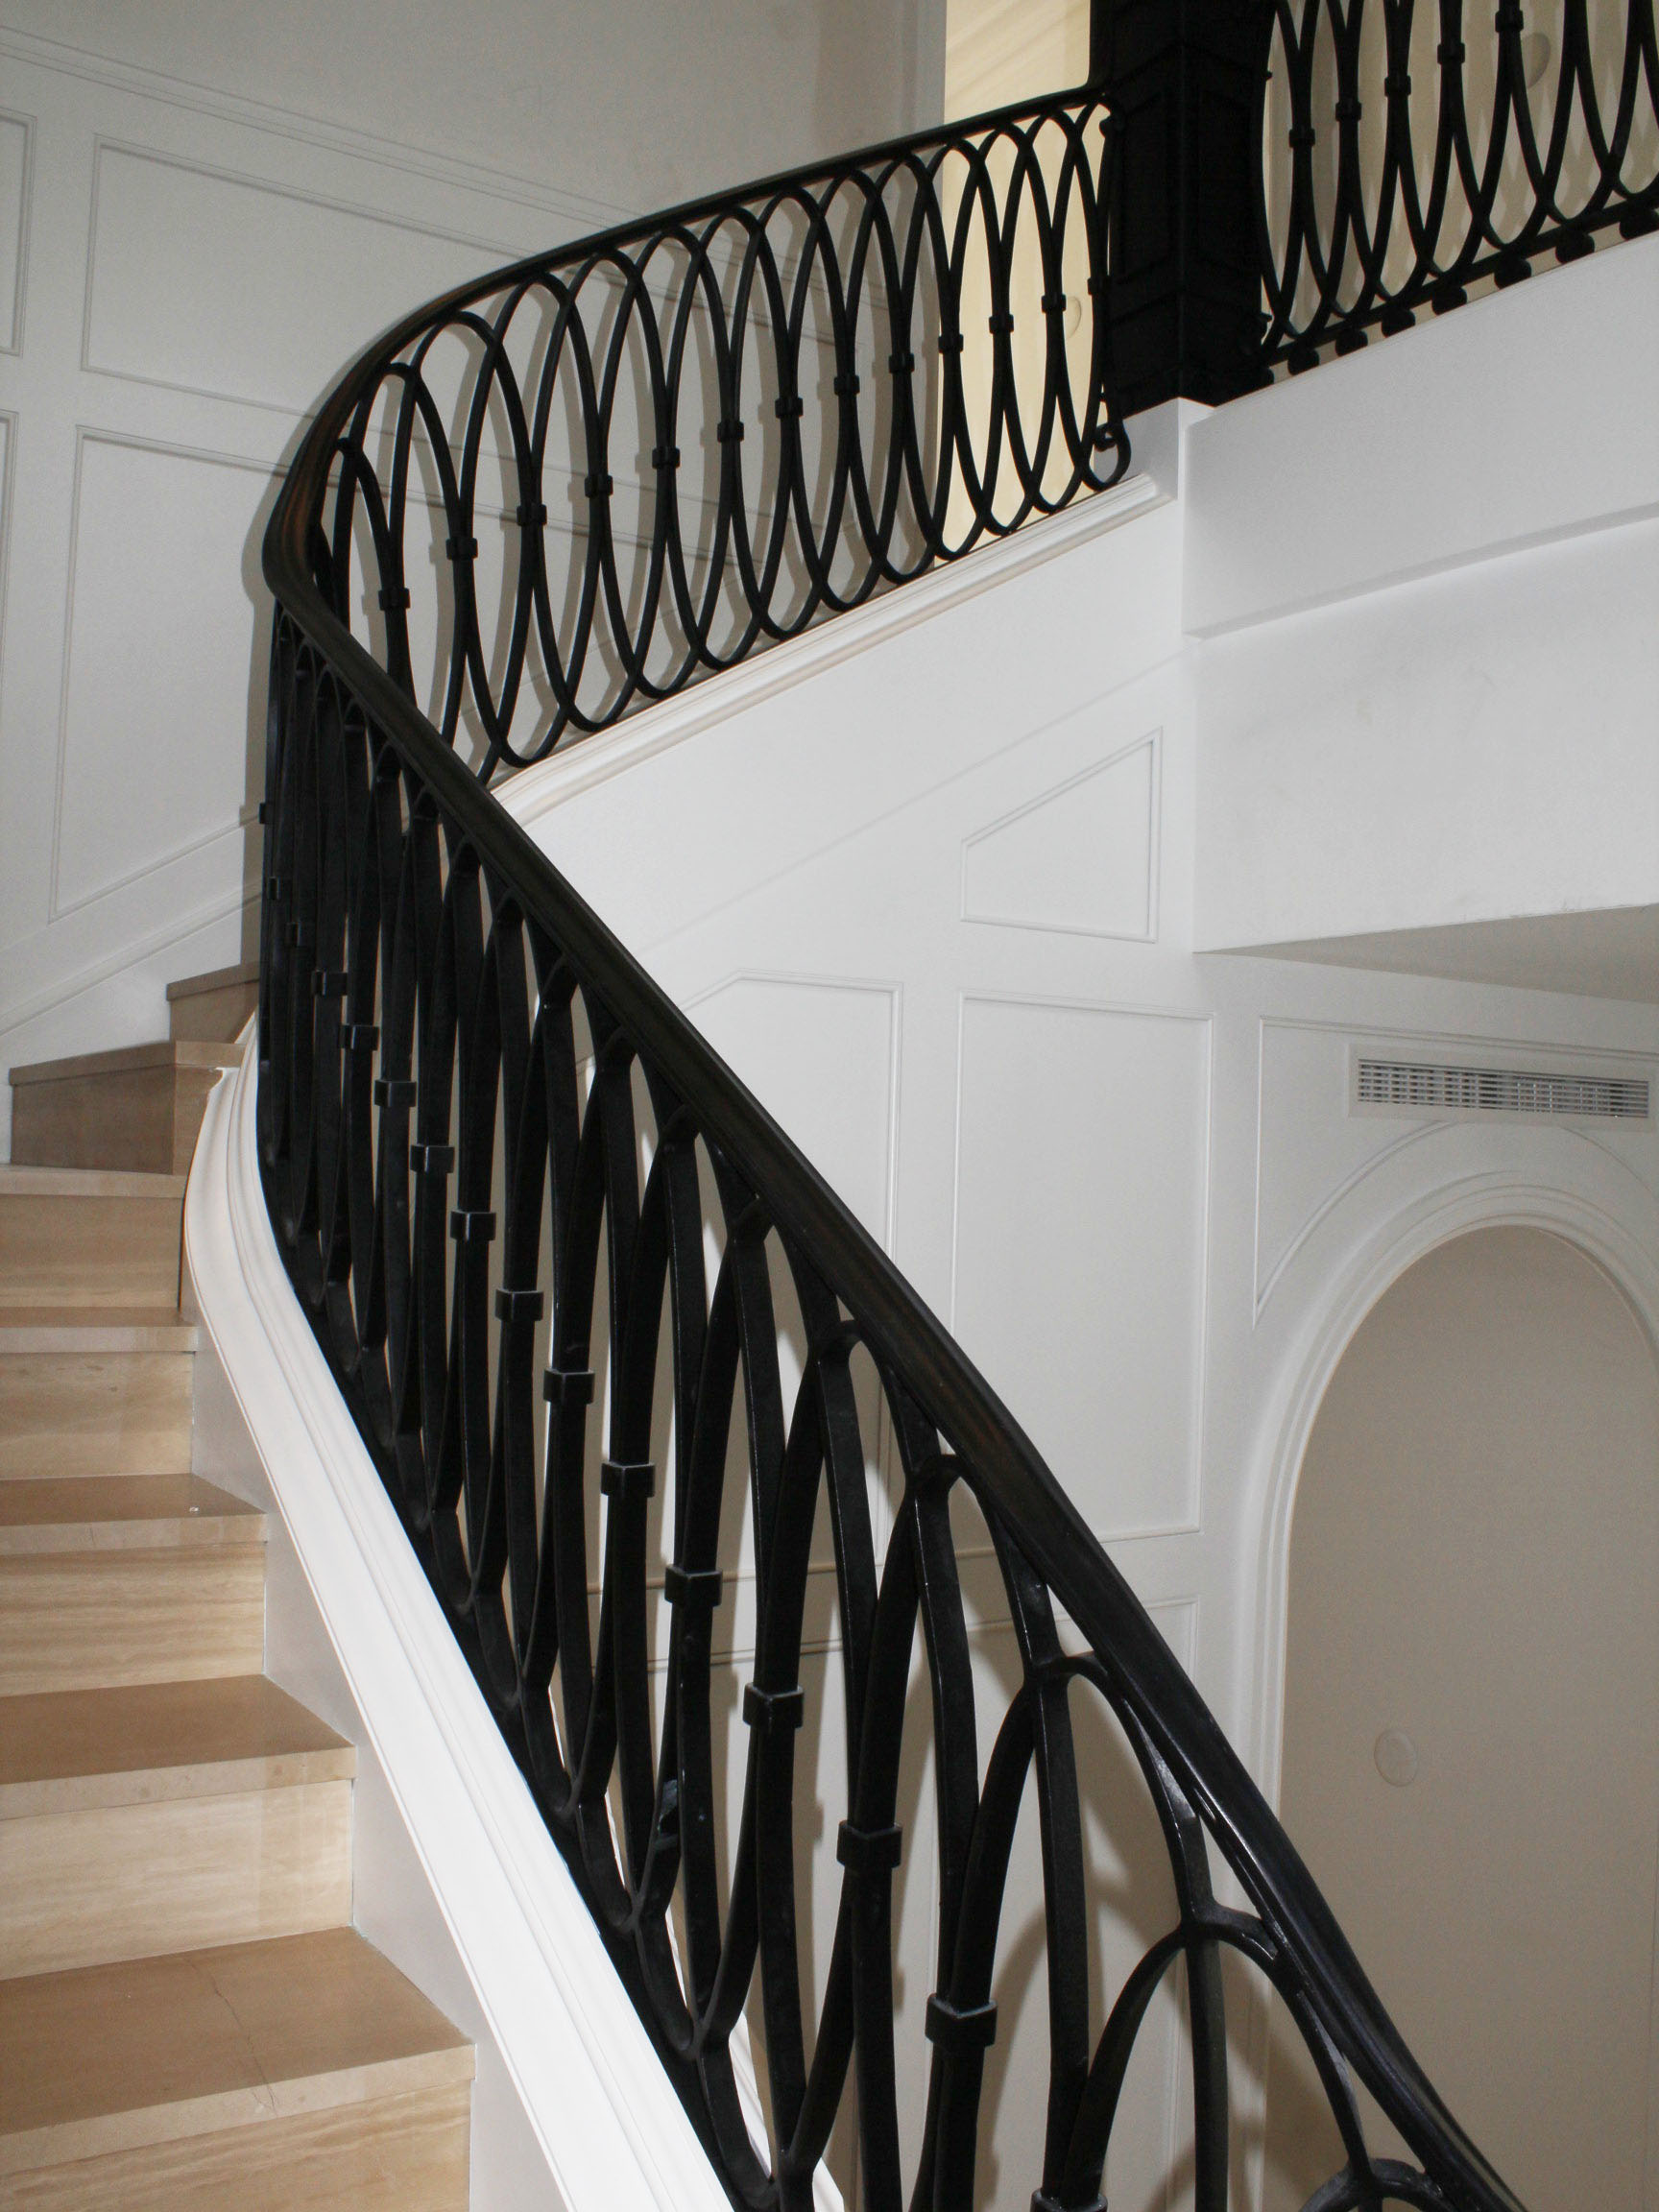 Another view of the spiral staircase curved millwork.